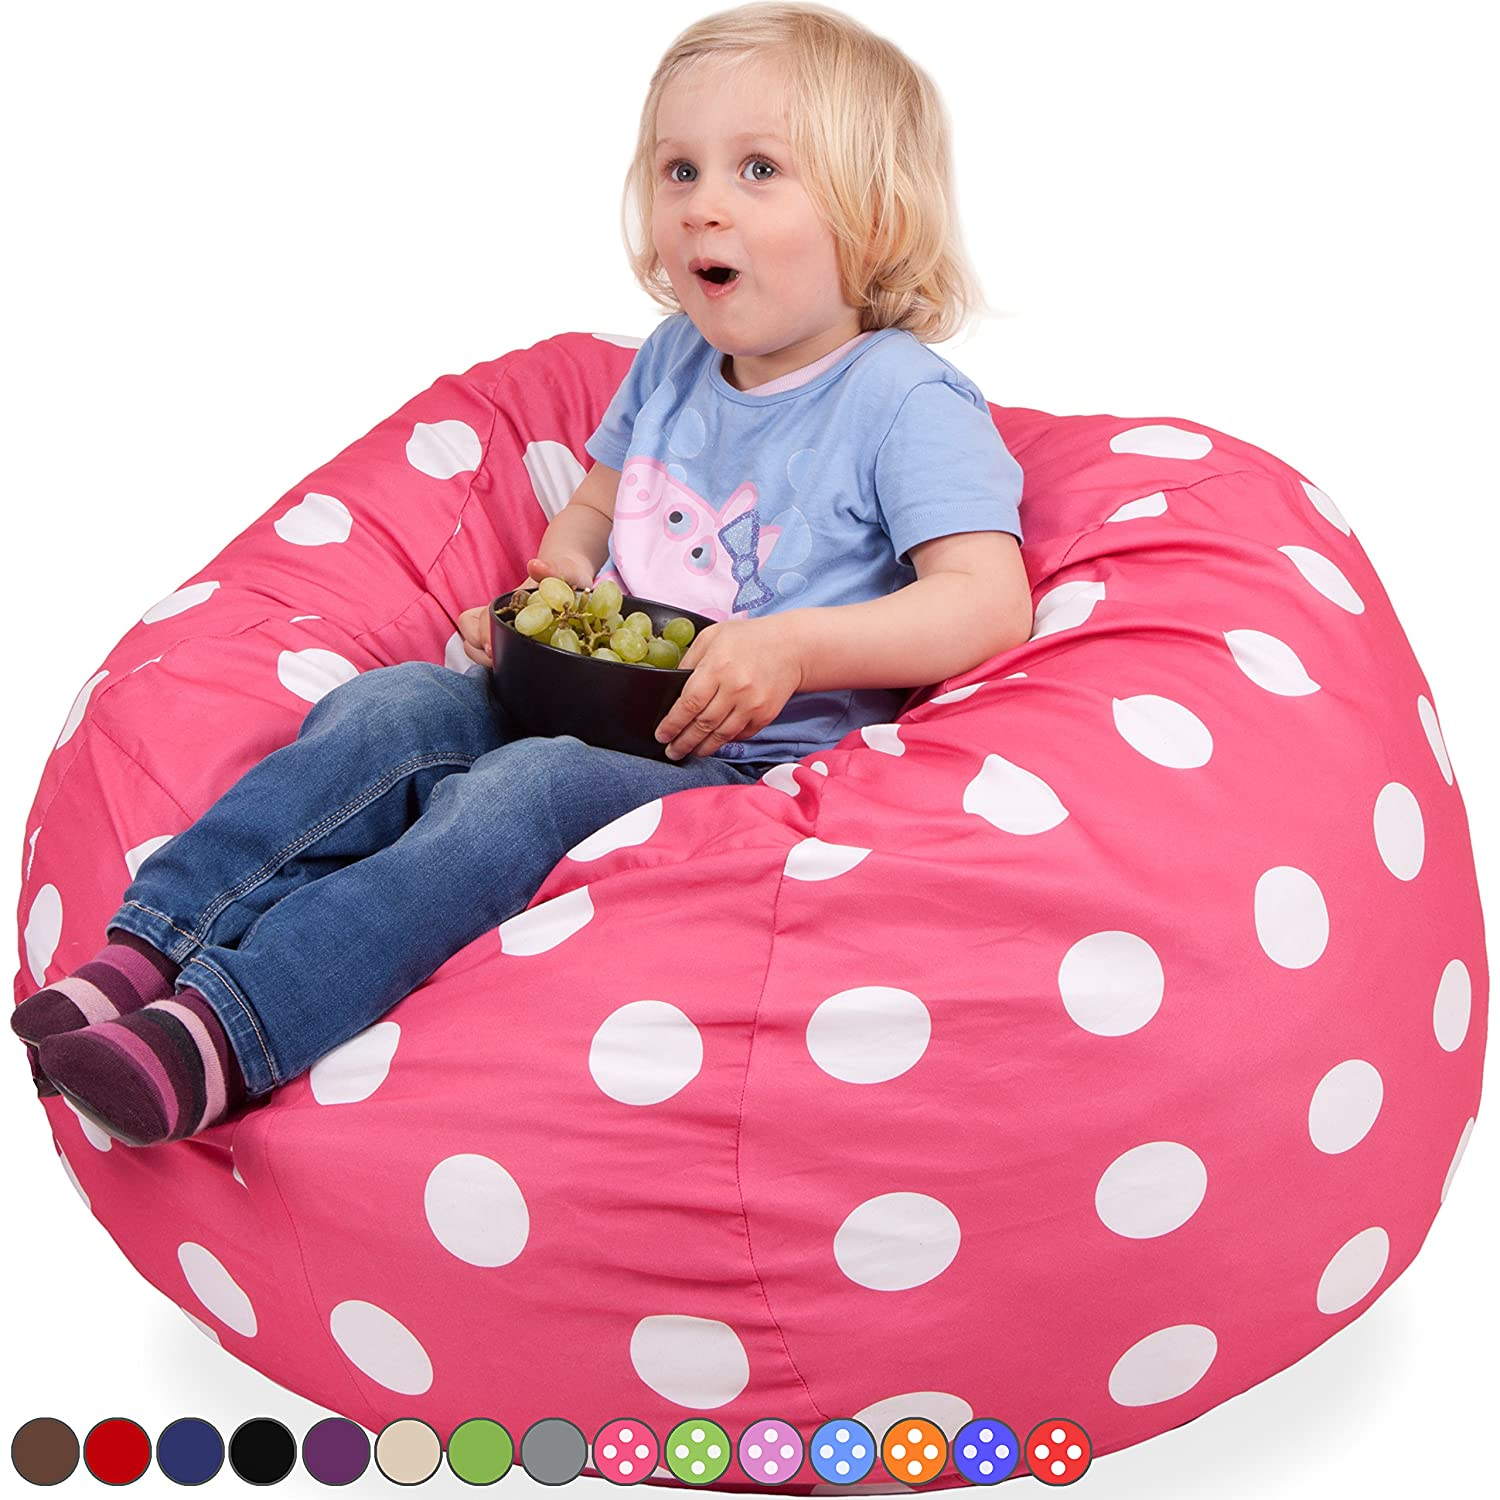 Amazon Oversized Bean Bag Chair in Candy Pink & White Polka